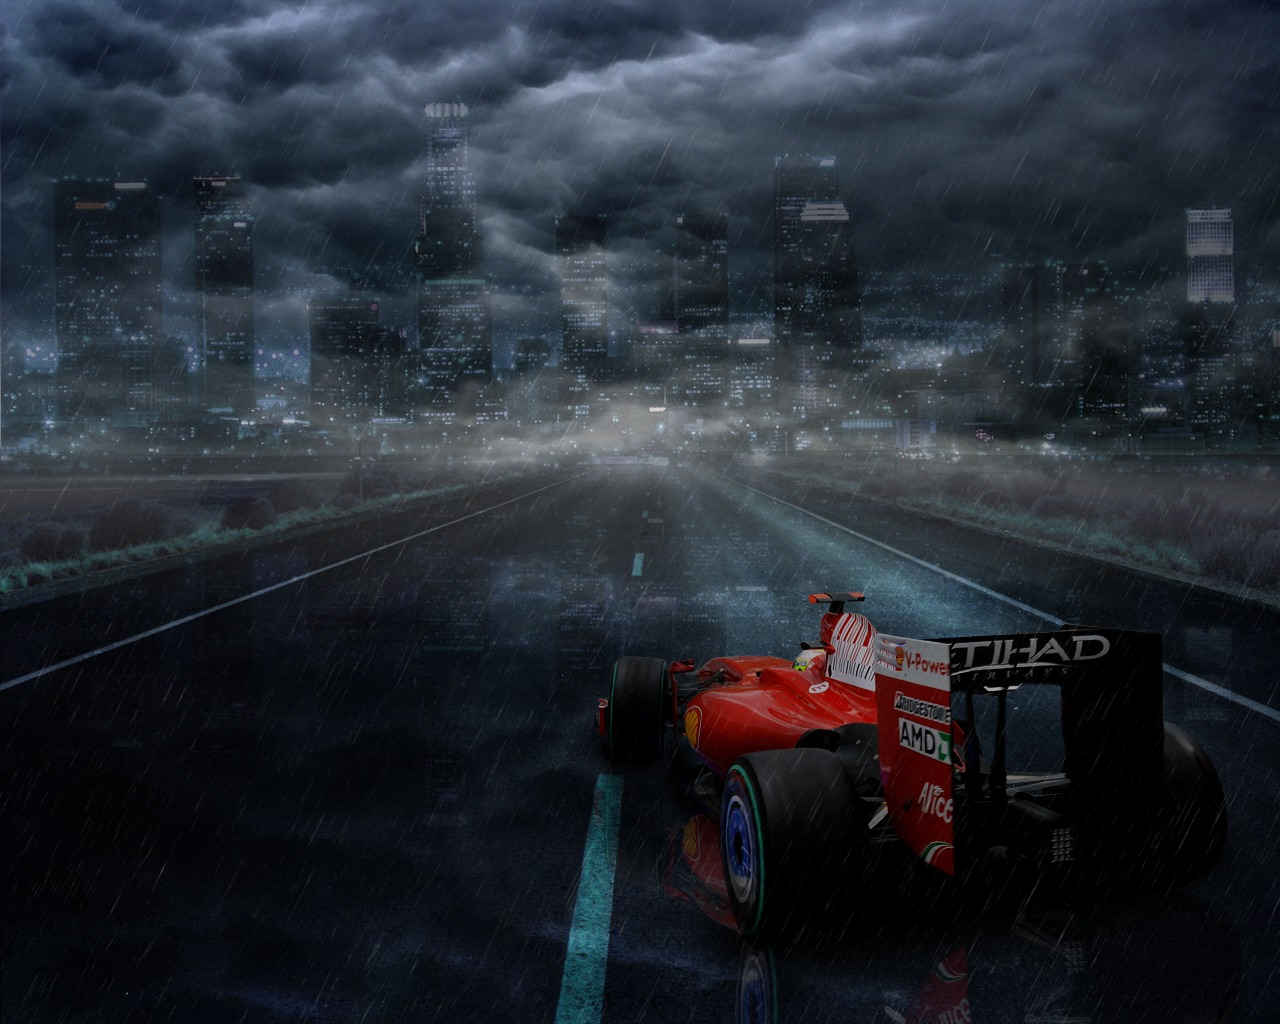 http://2.bp.blogspot.com/_RAlP3BmEW1Q/TQYQS7UwbFI/AAAAAAAACbE/bRSmlMDanZk/s1600/The-best-top-desktop-formula-1-wallpapers-21.jpg